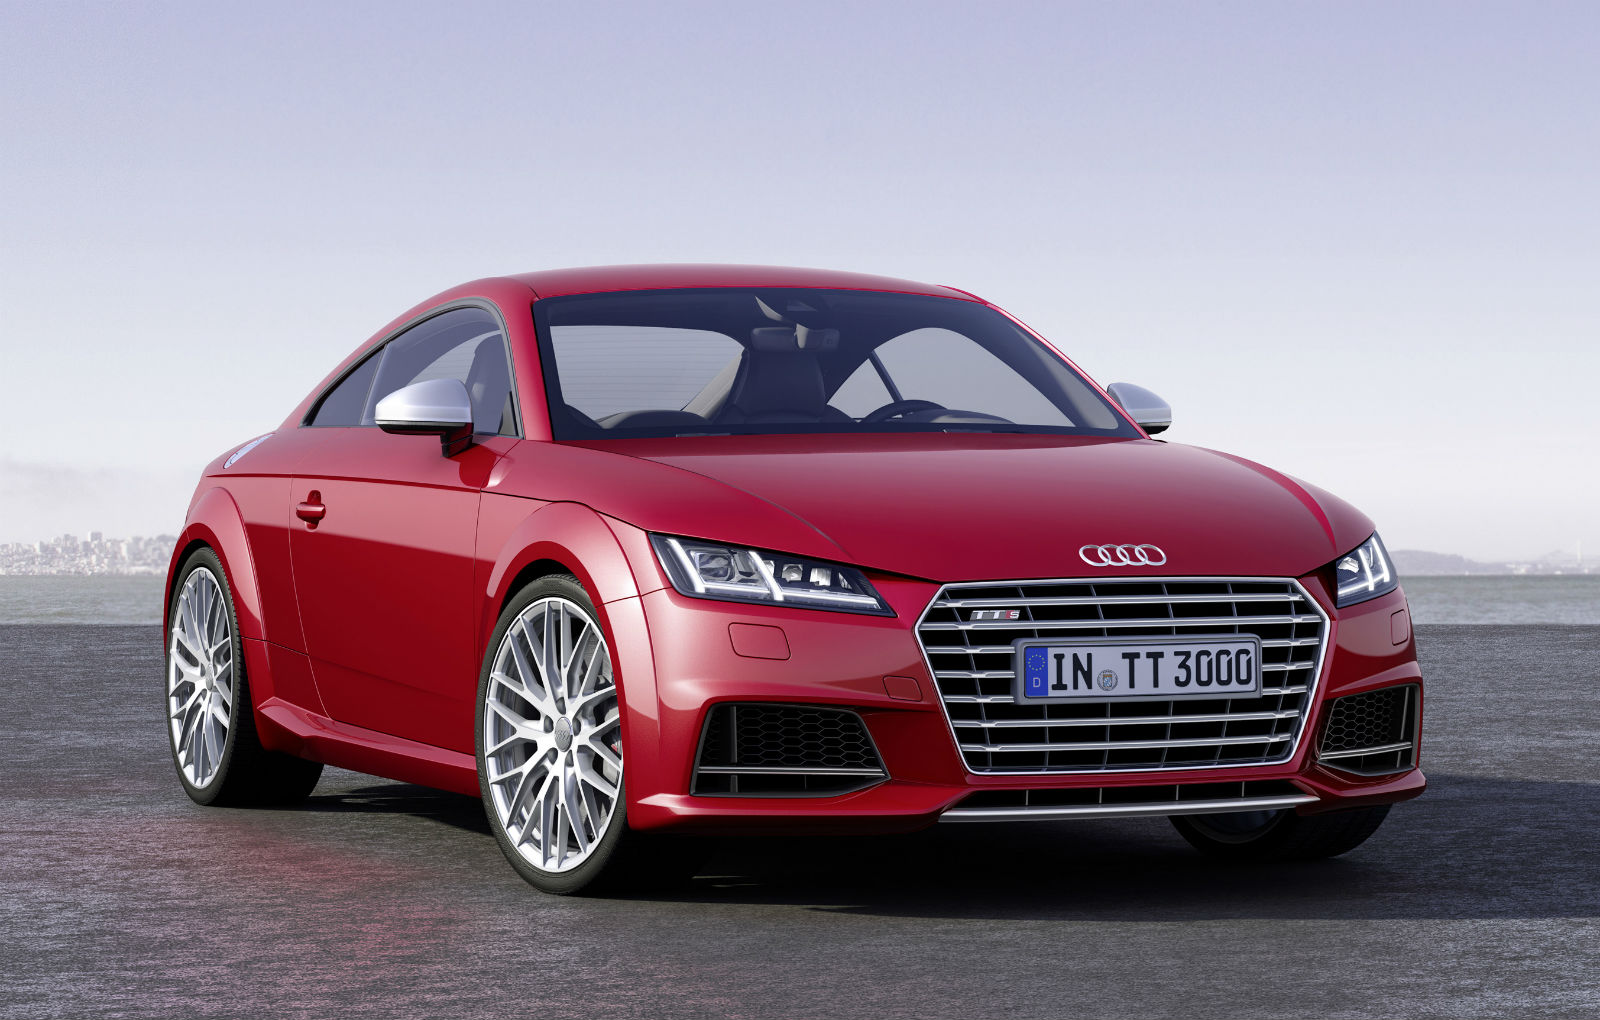 2015 Audi TTS Sport Car Wallpaper   HD 1600x1020